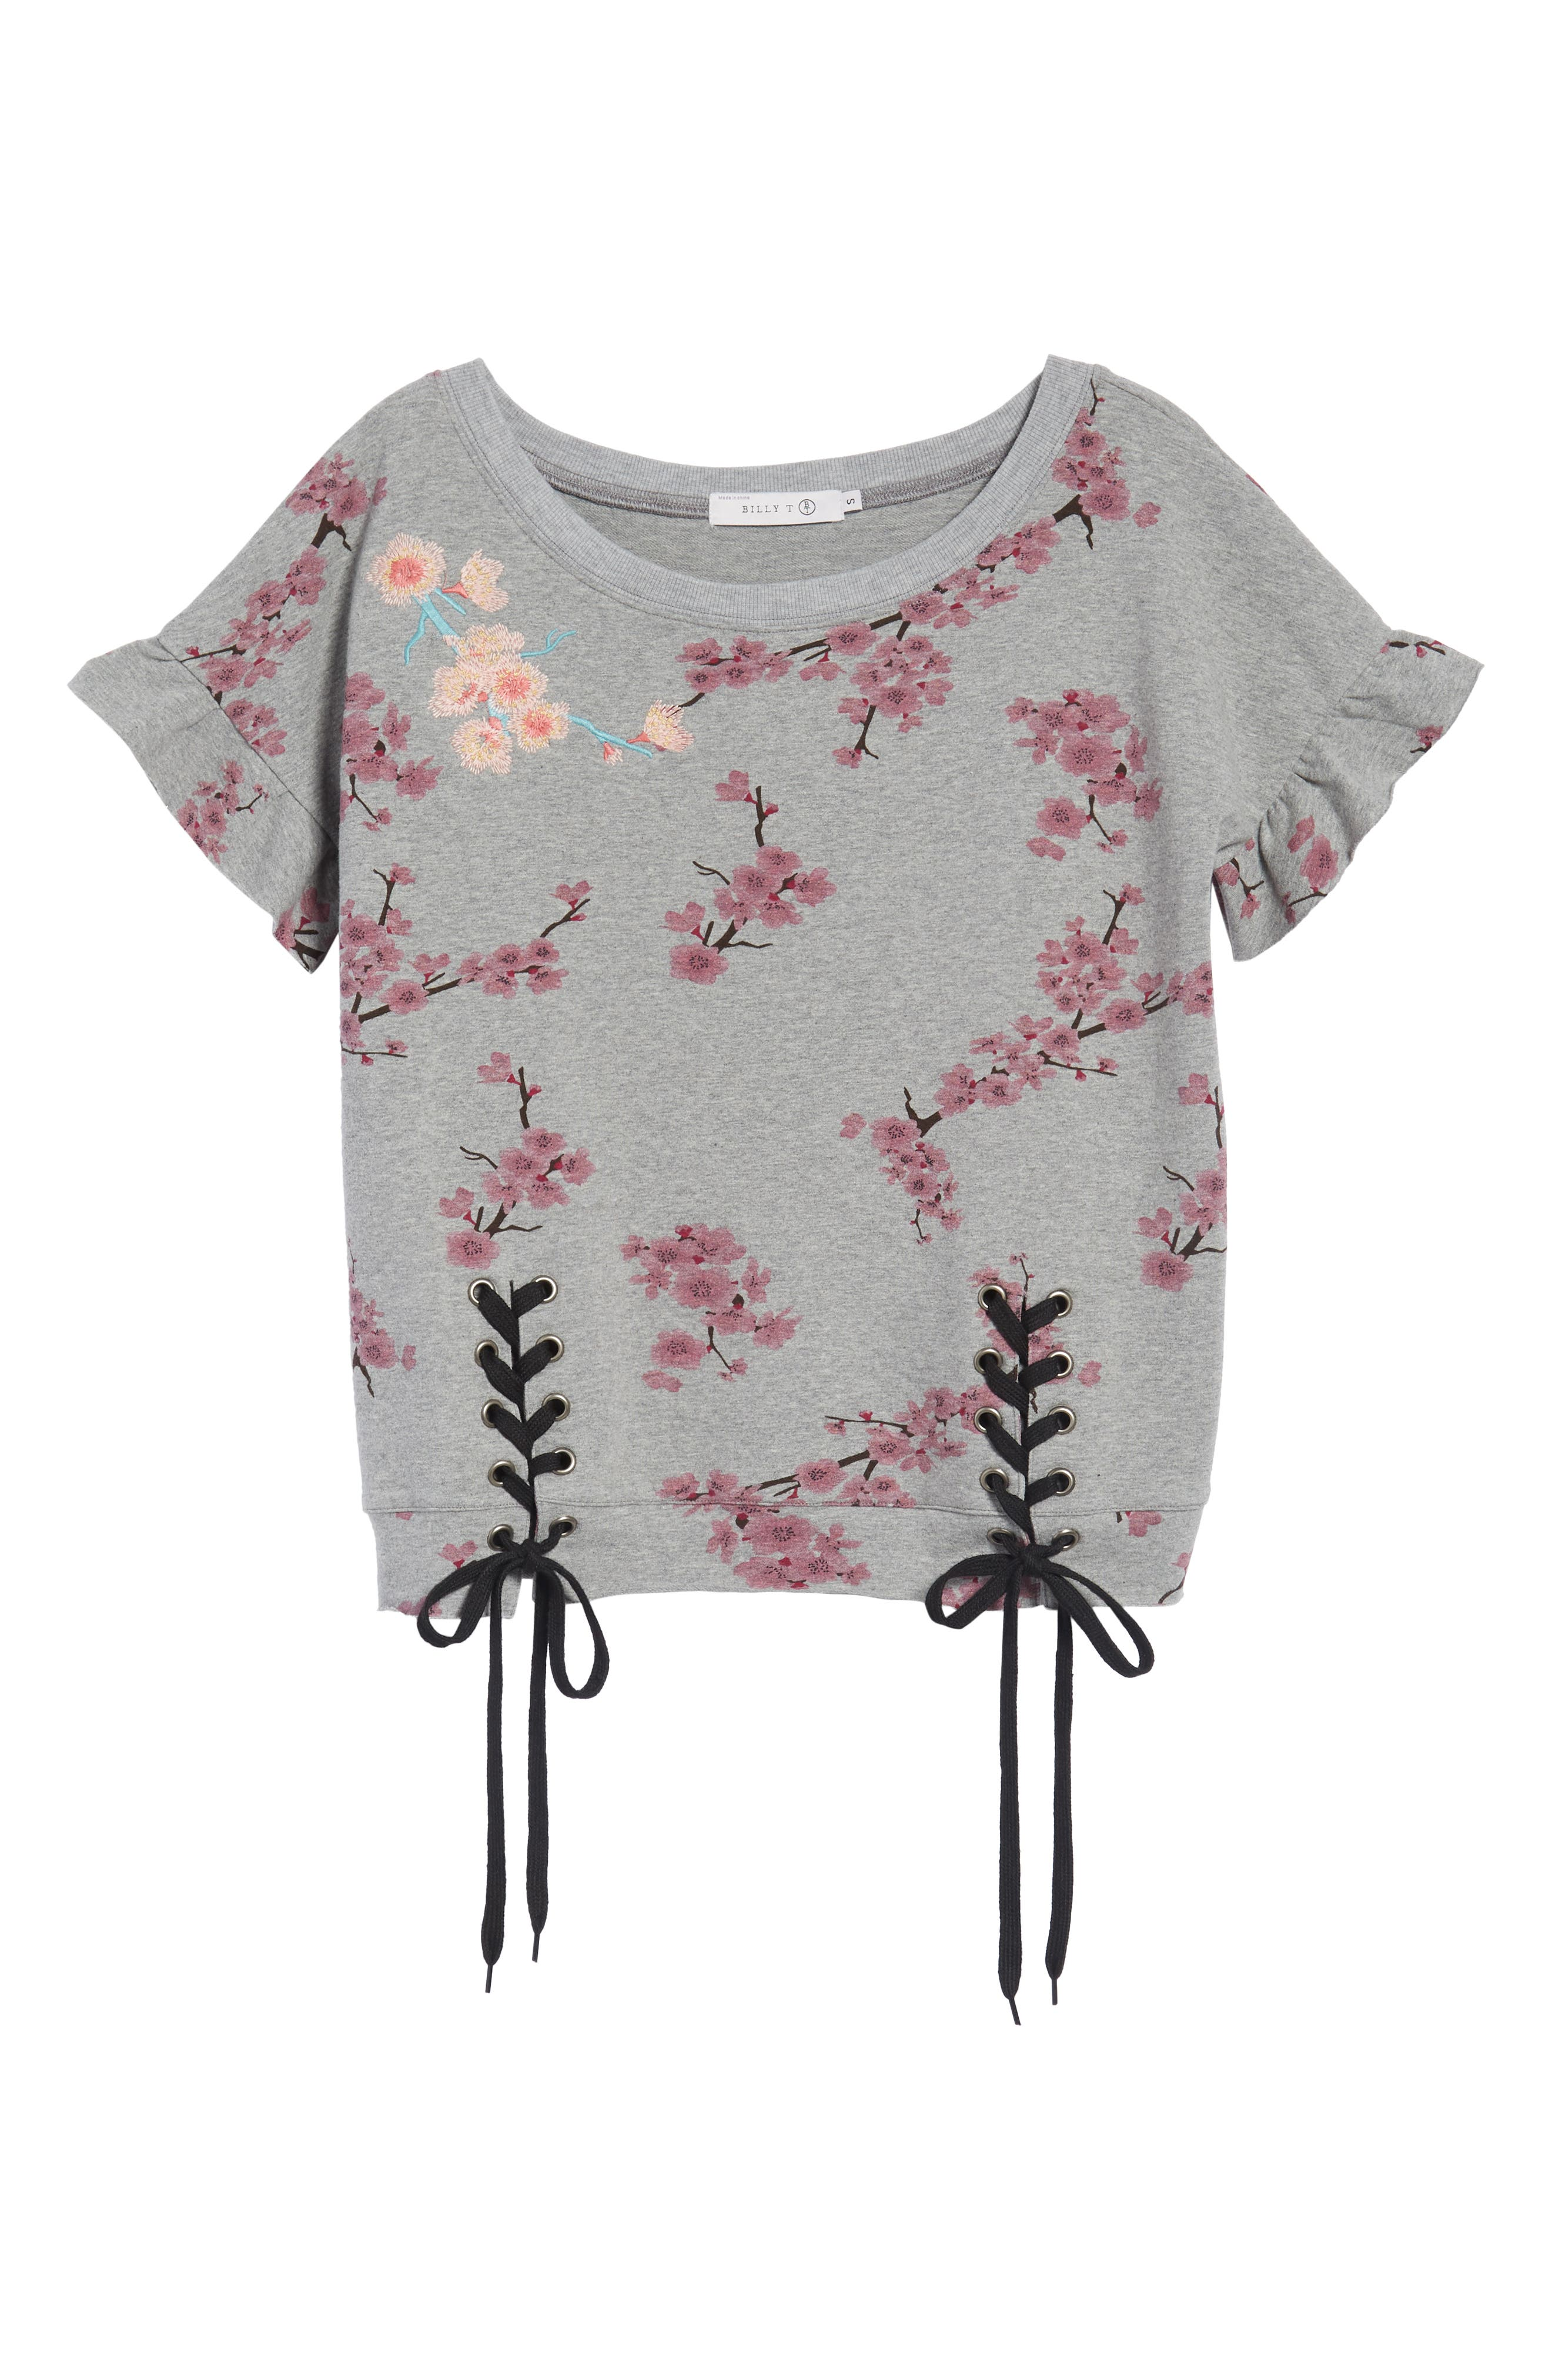 Short Sleeve Lace Up Cherry Blossom Sweatshirt,                             Alternate thumbnail 7, color,                             Grey Cherry Blossom